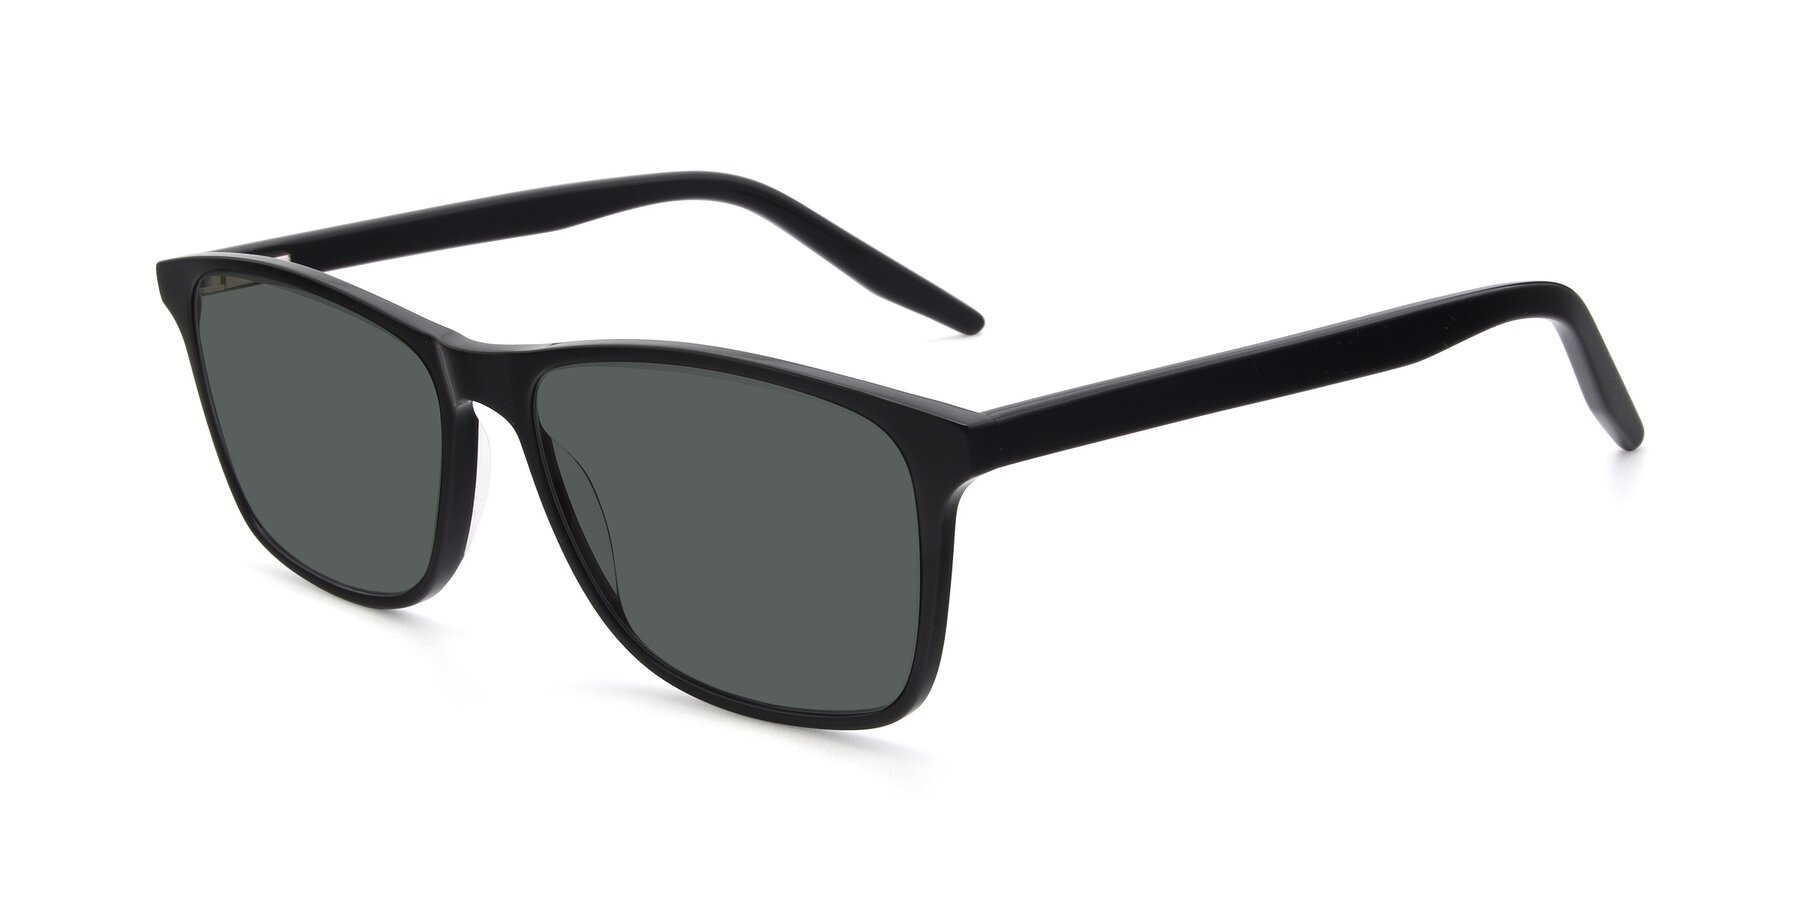 Angle of 17500 in Black with Gray Polarized Lenses